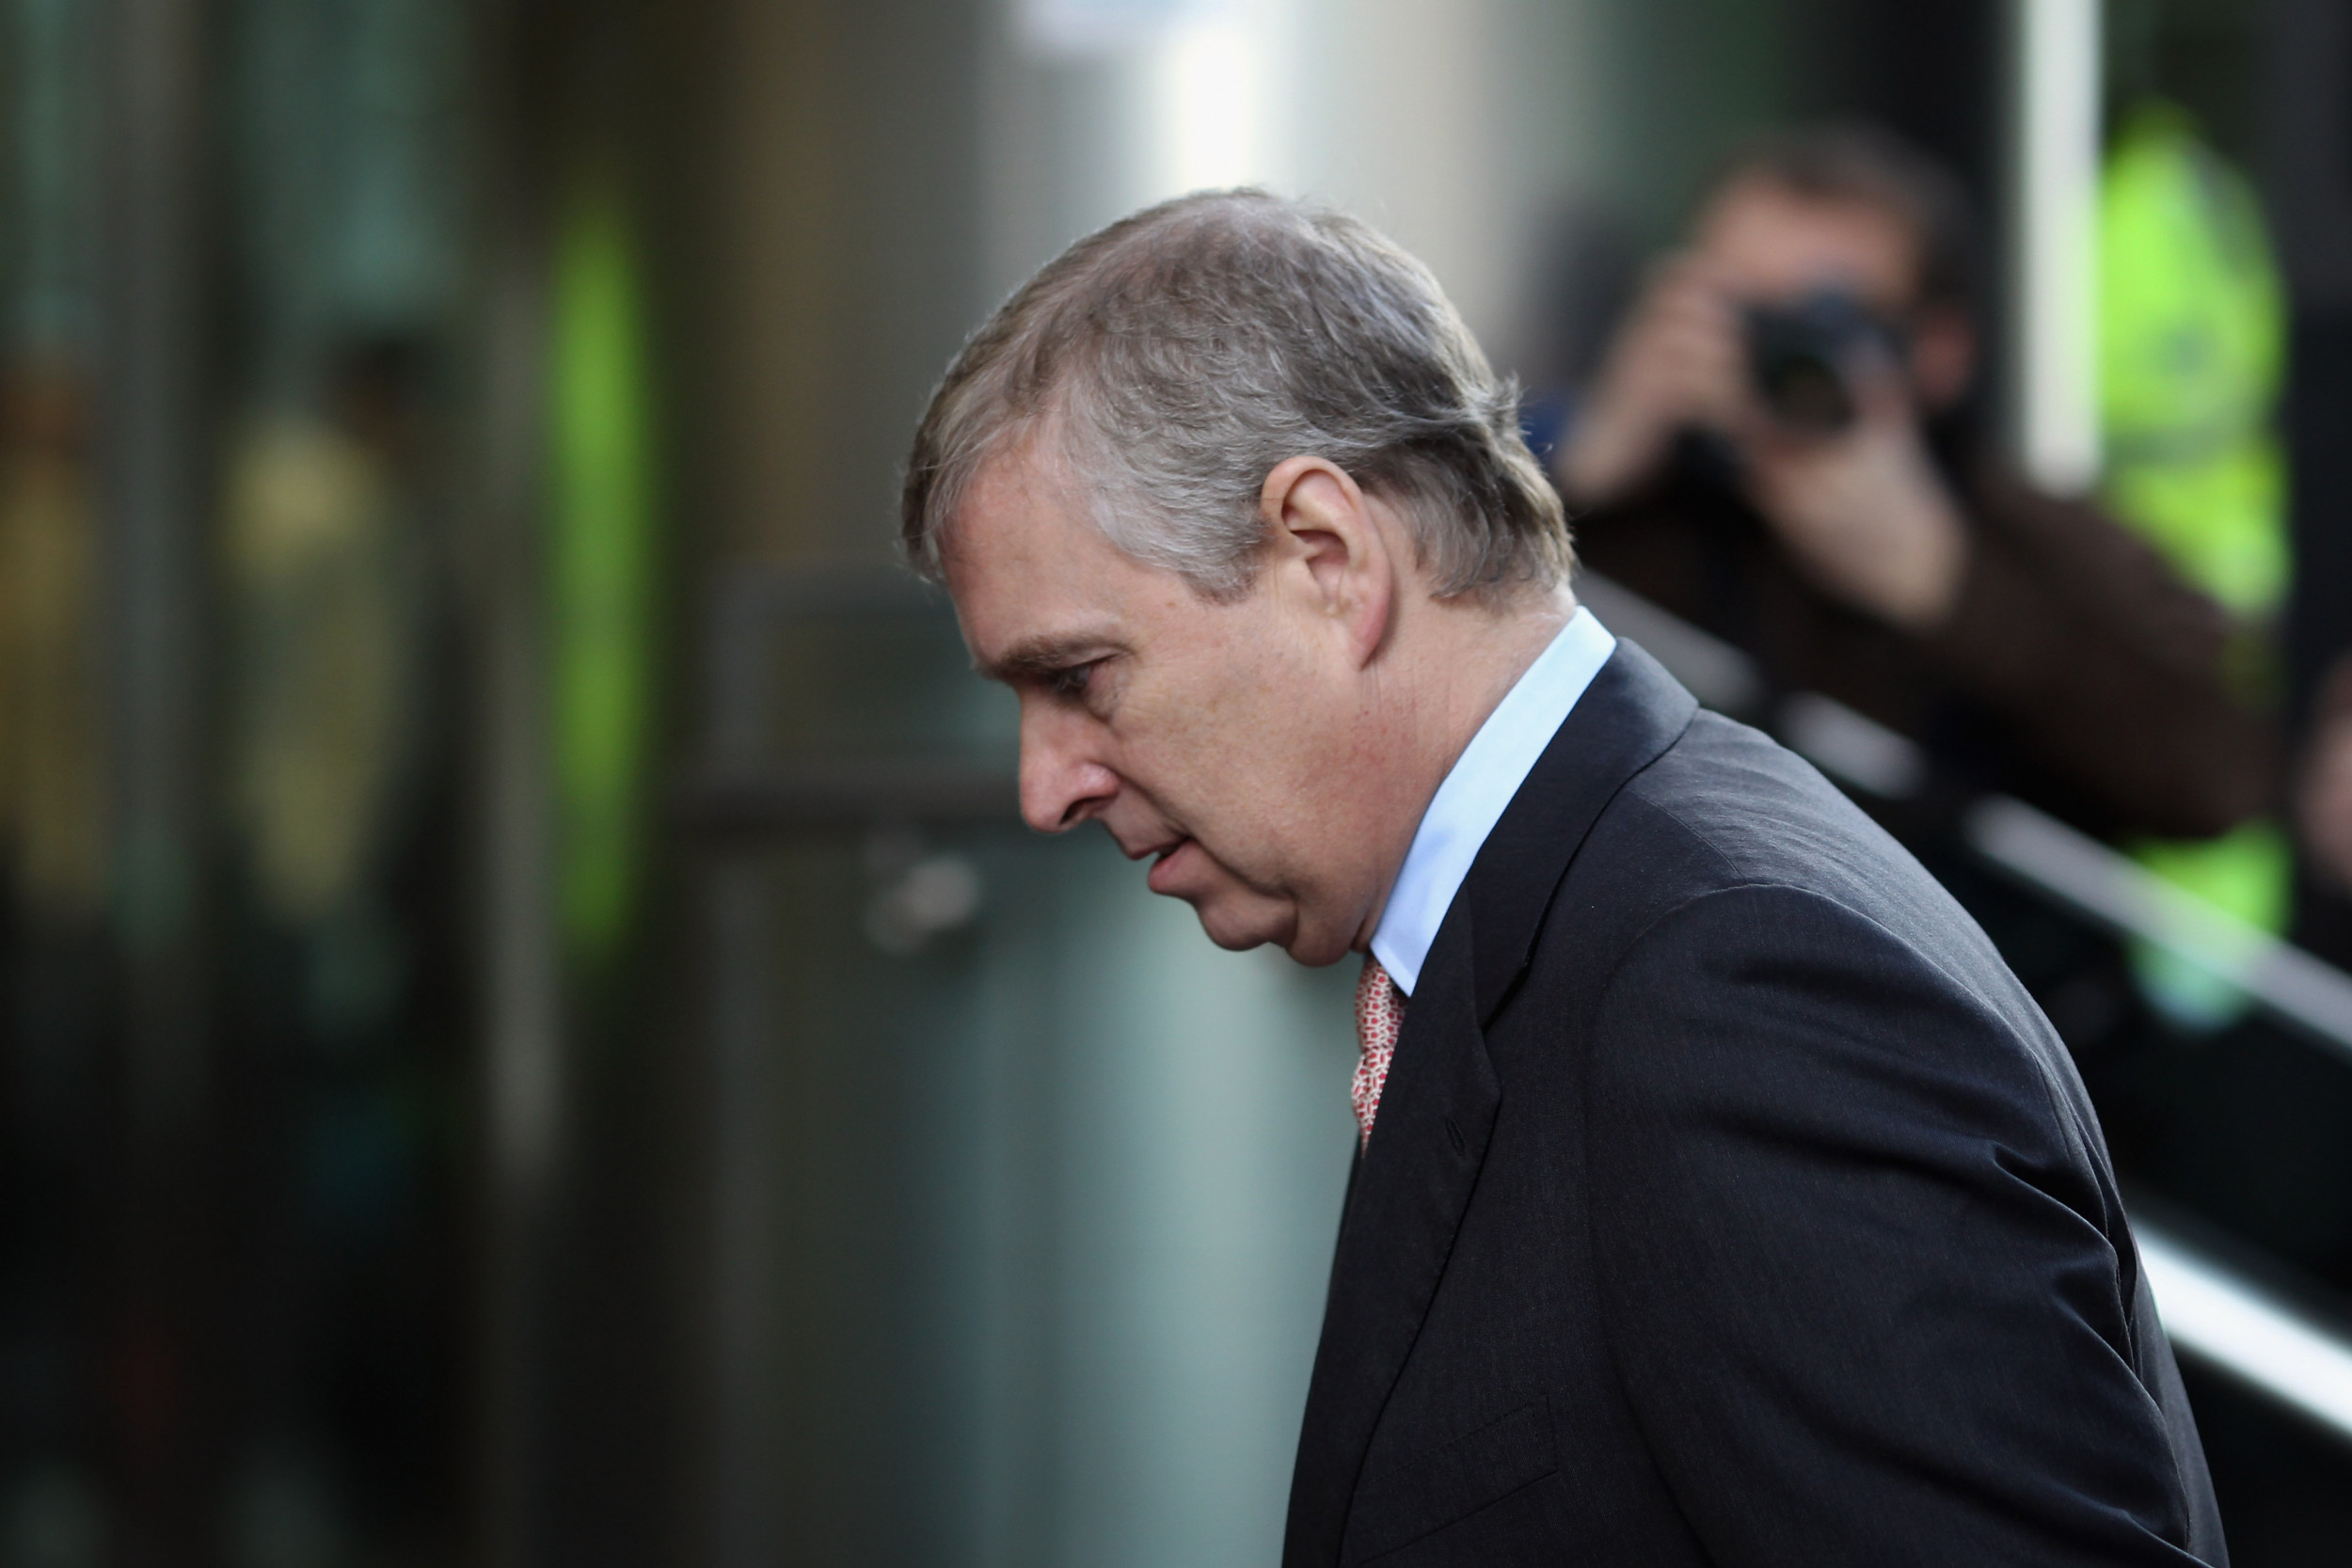 Prince Andrew and Jeffrey Epstein Club Claims 'Difficult to Believe,' Says Friend